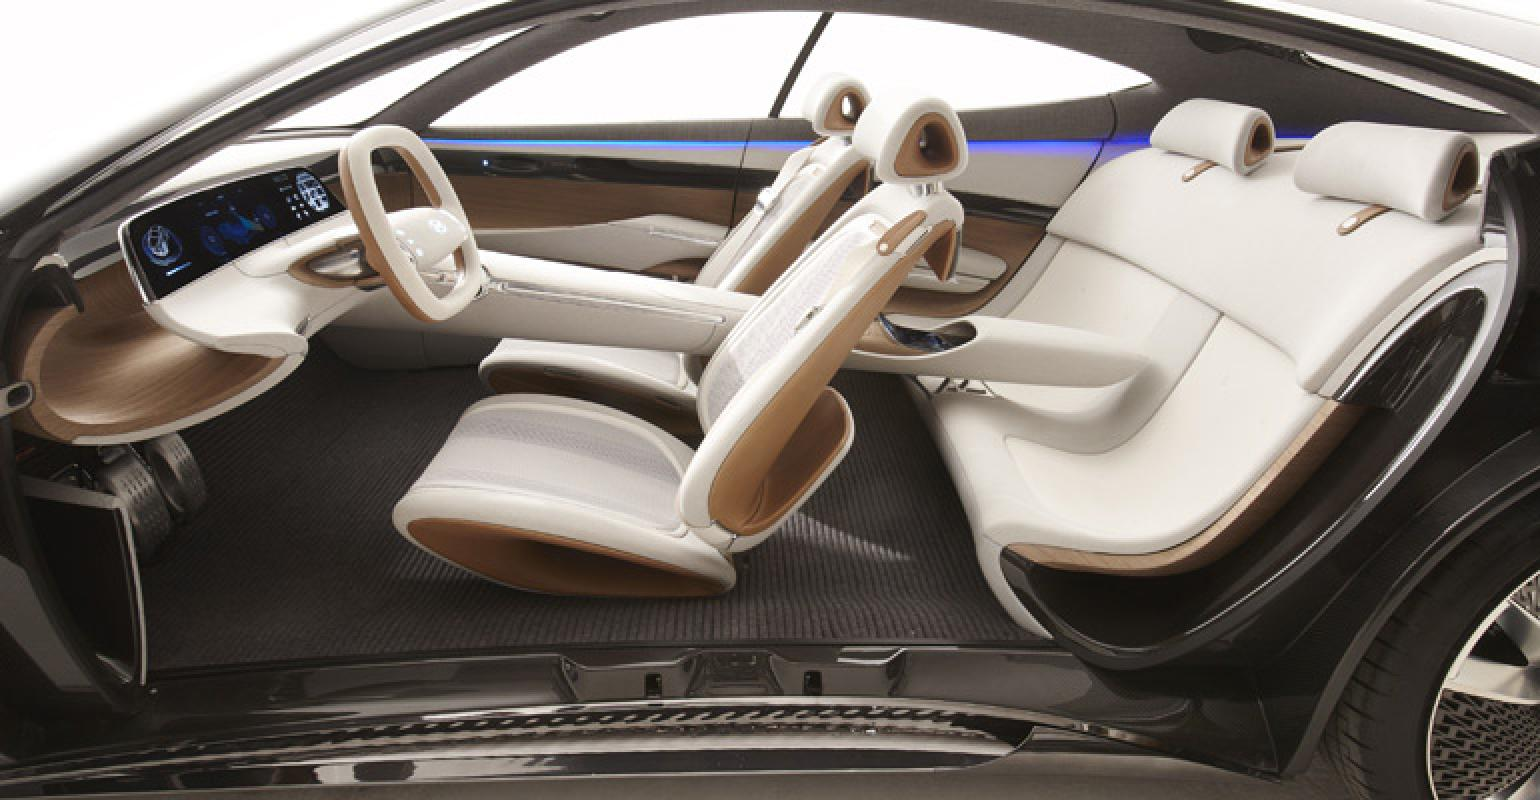 Hyundai Conceives New Interior Design With Le Fil Rouge Concept Wardsauto